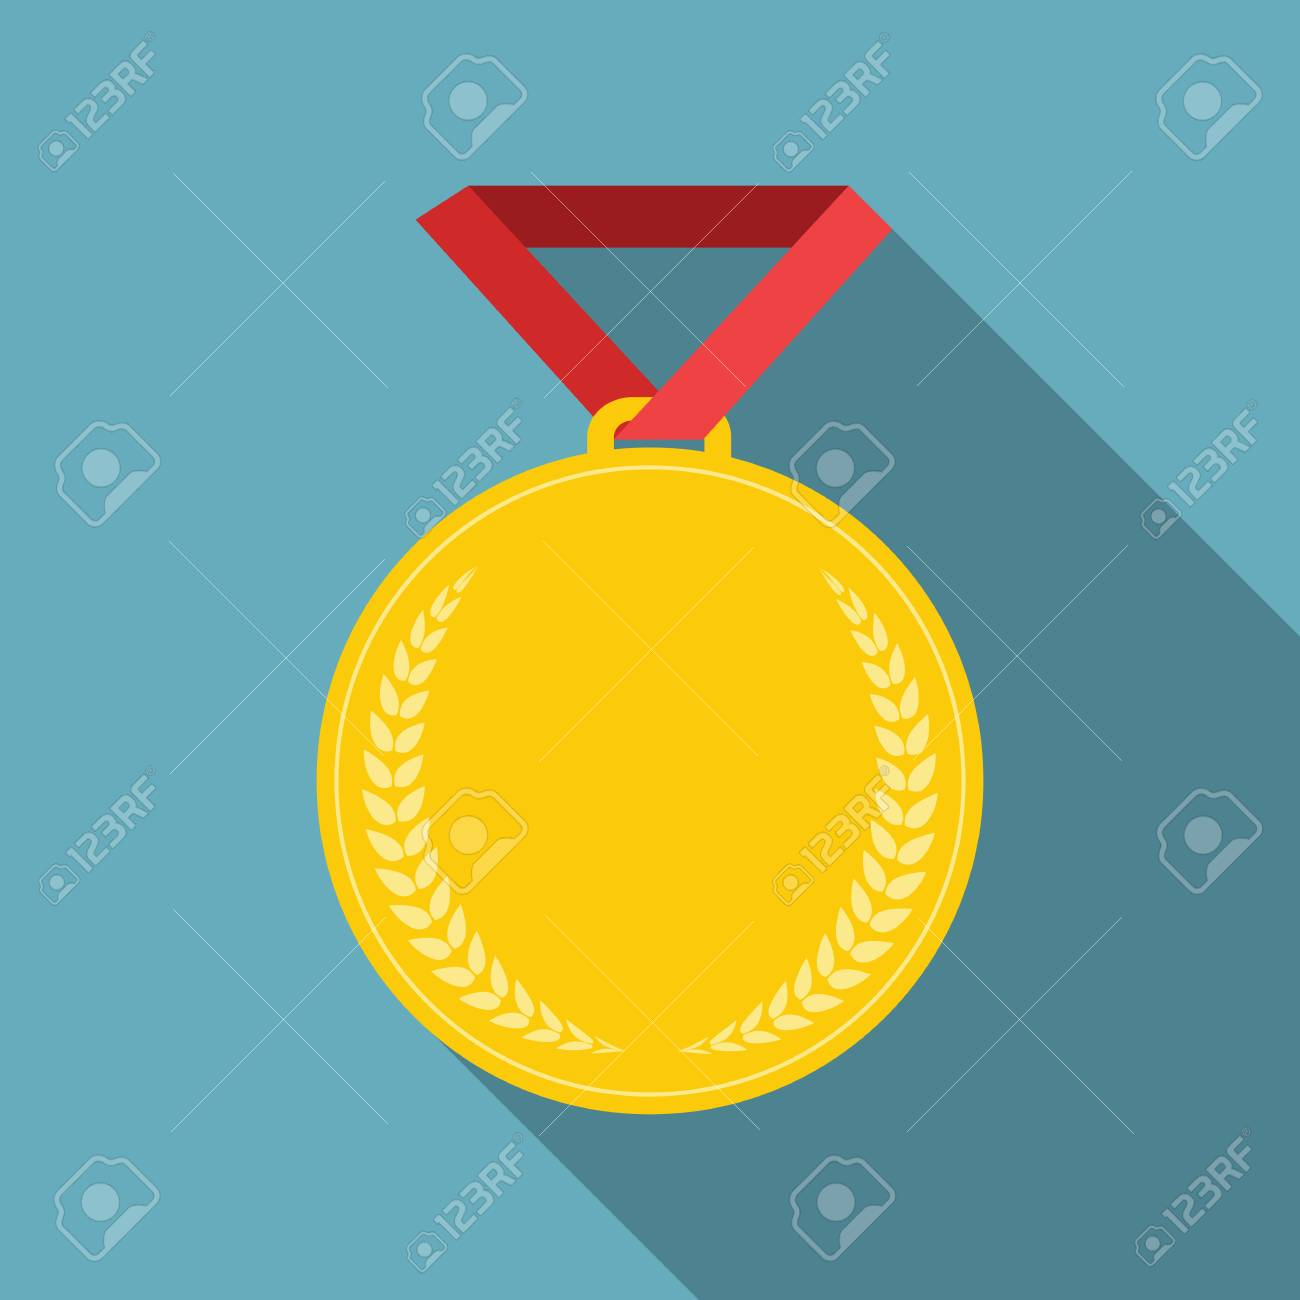 Art Flat Medal Icon Template for Web  Medal icon app  Medal icon